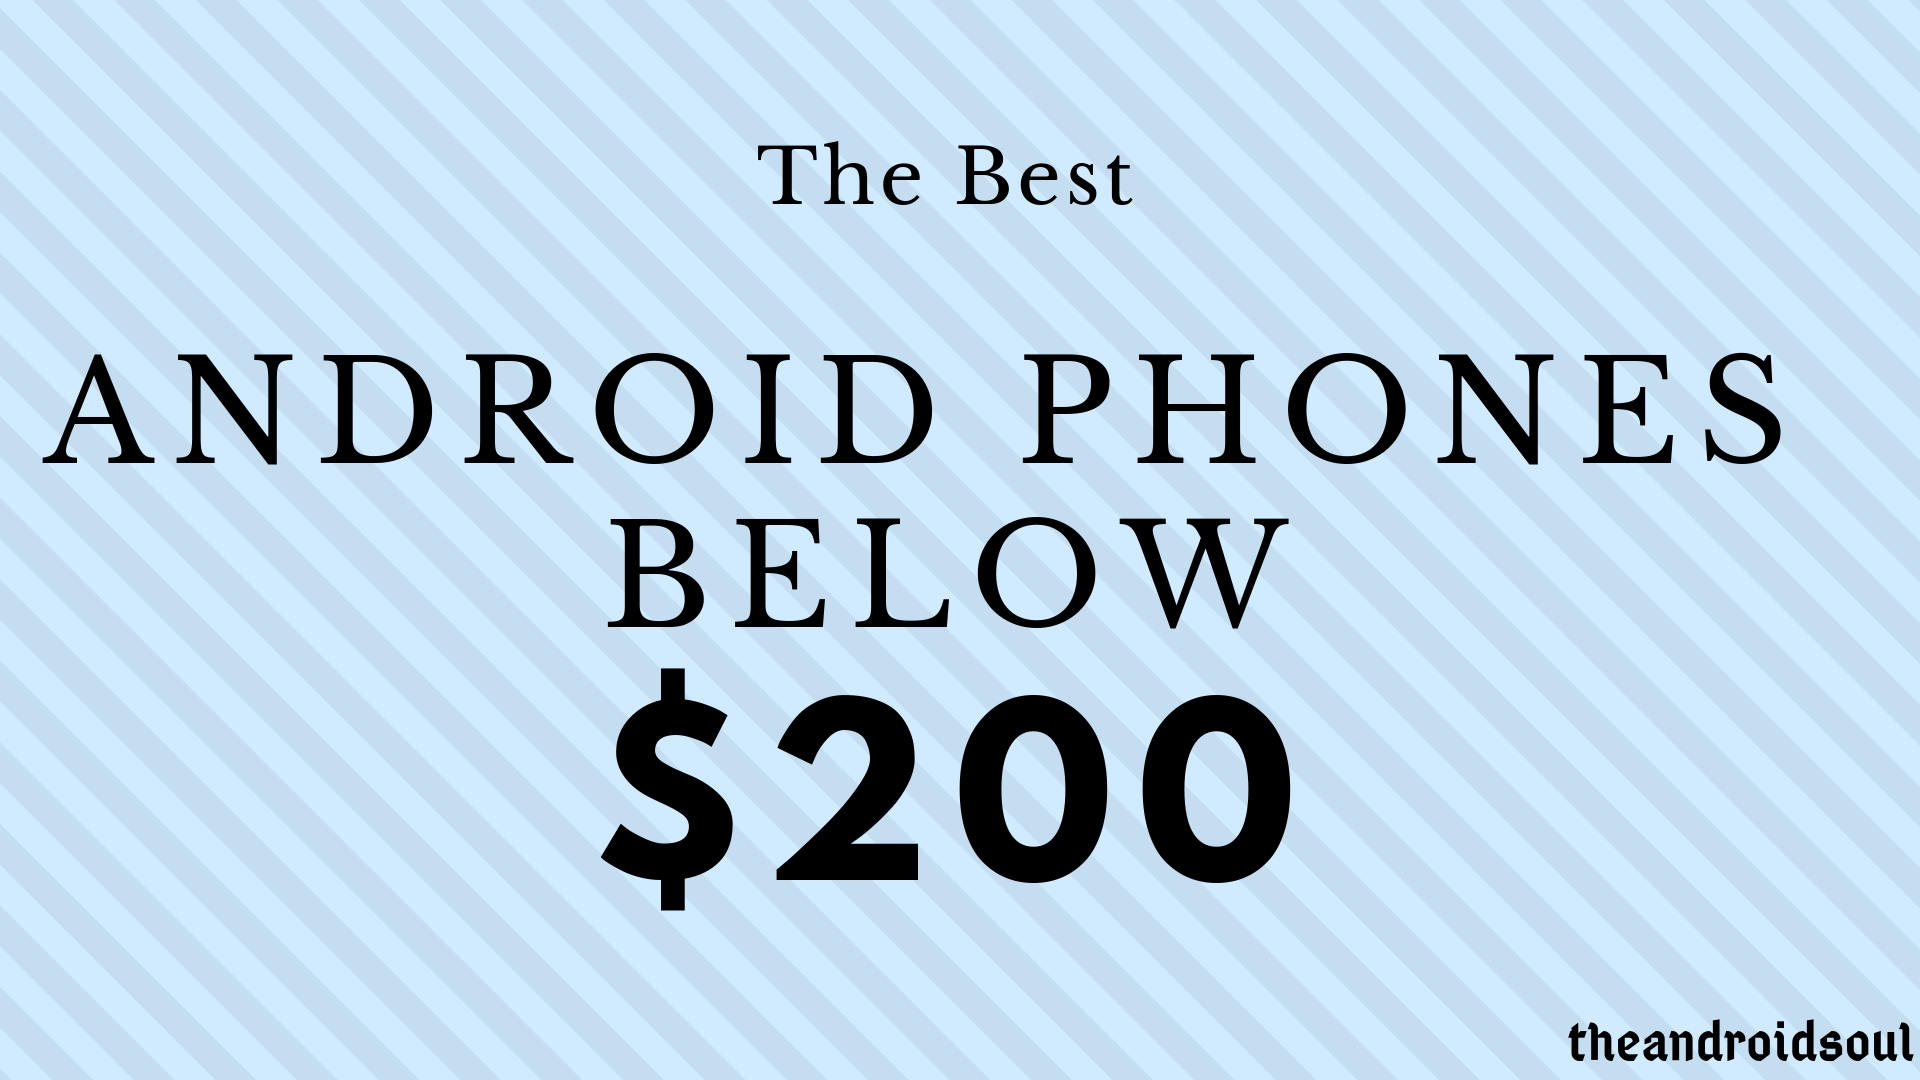 The Best Android phones below $200